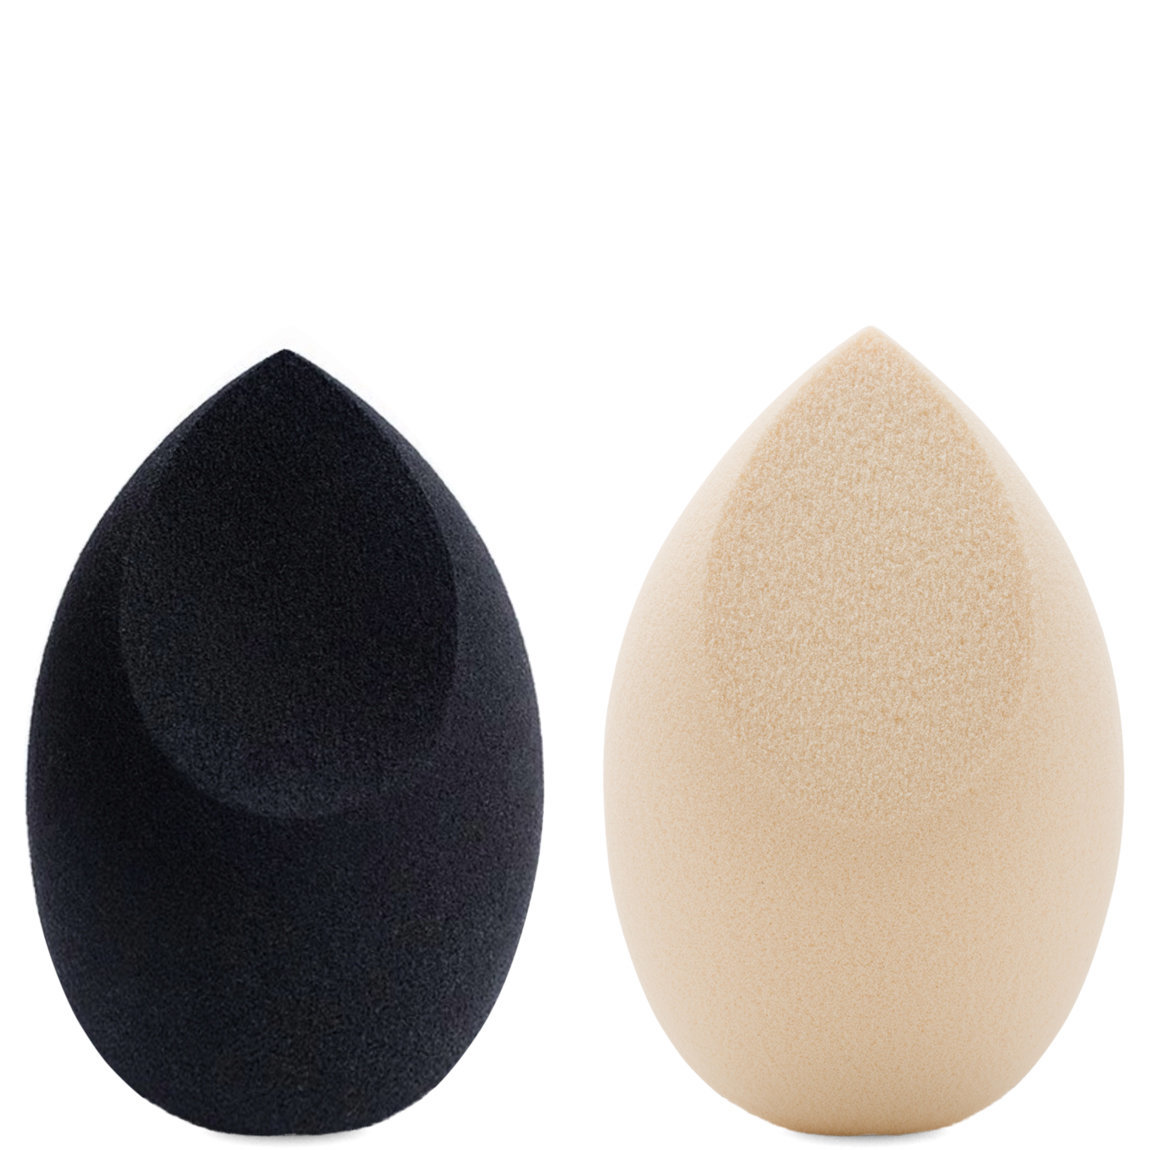 JUNO & Co. Cloud Makeup Sponge Duo product swatch.